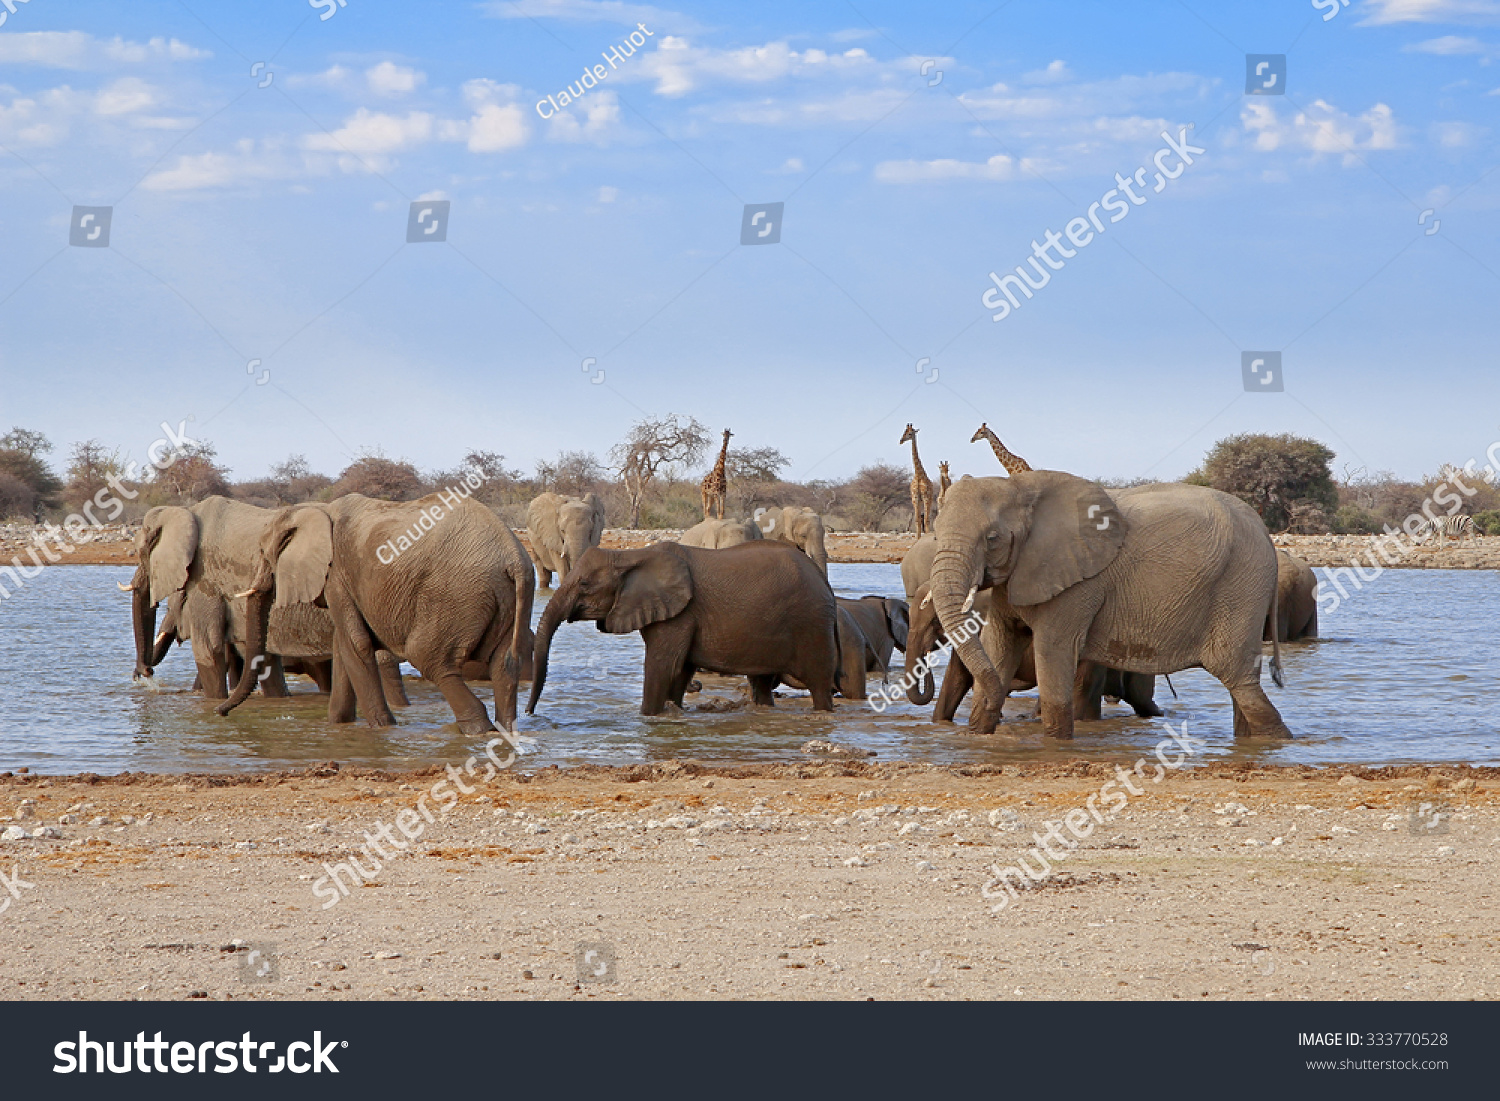 Herd of elephants (Loxodonta afrcana) drinking and bathing at a waterhole in Etosha National Park, Namibia